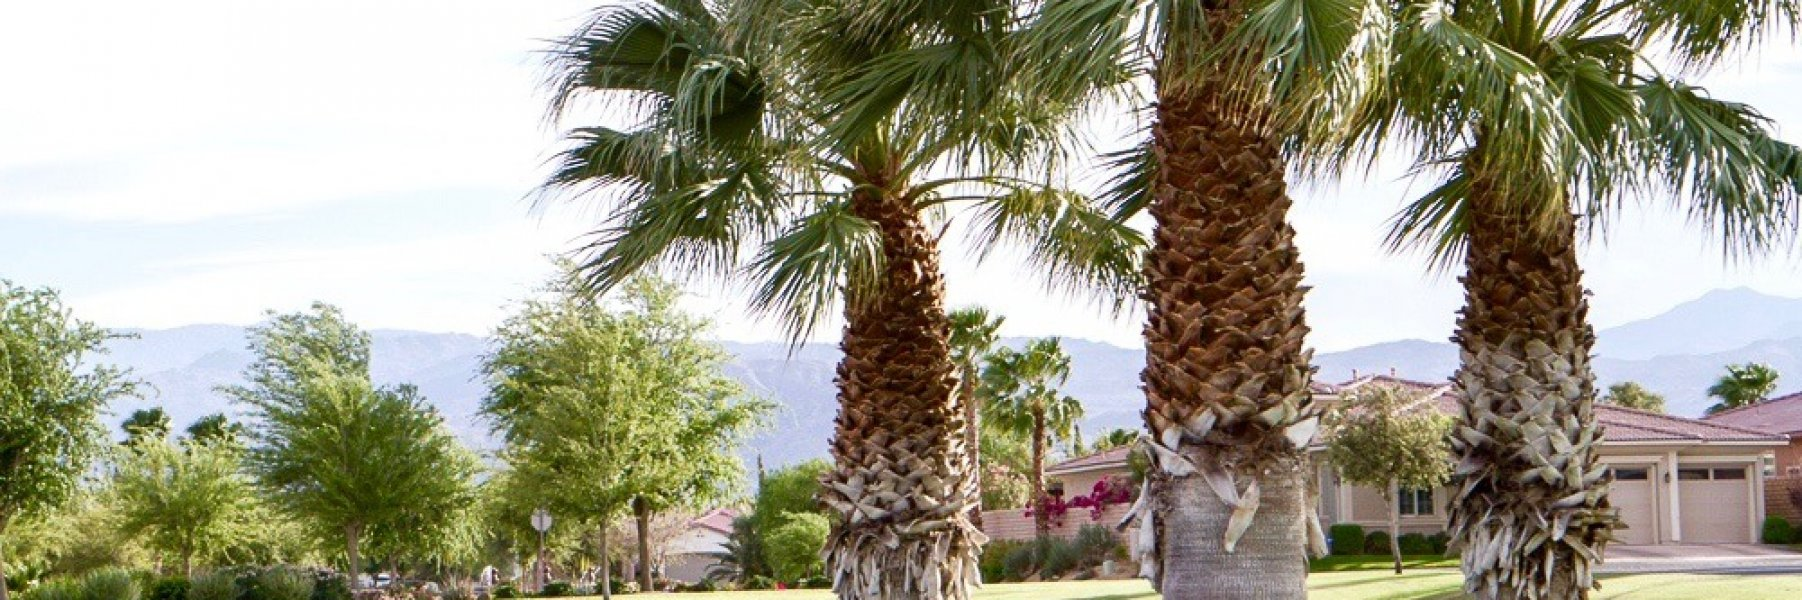 Tuscany is a community of homes in Rancho Mirage California